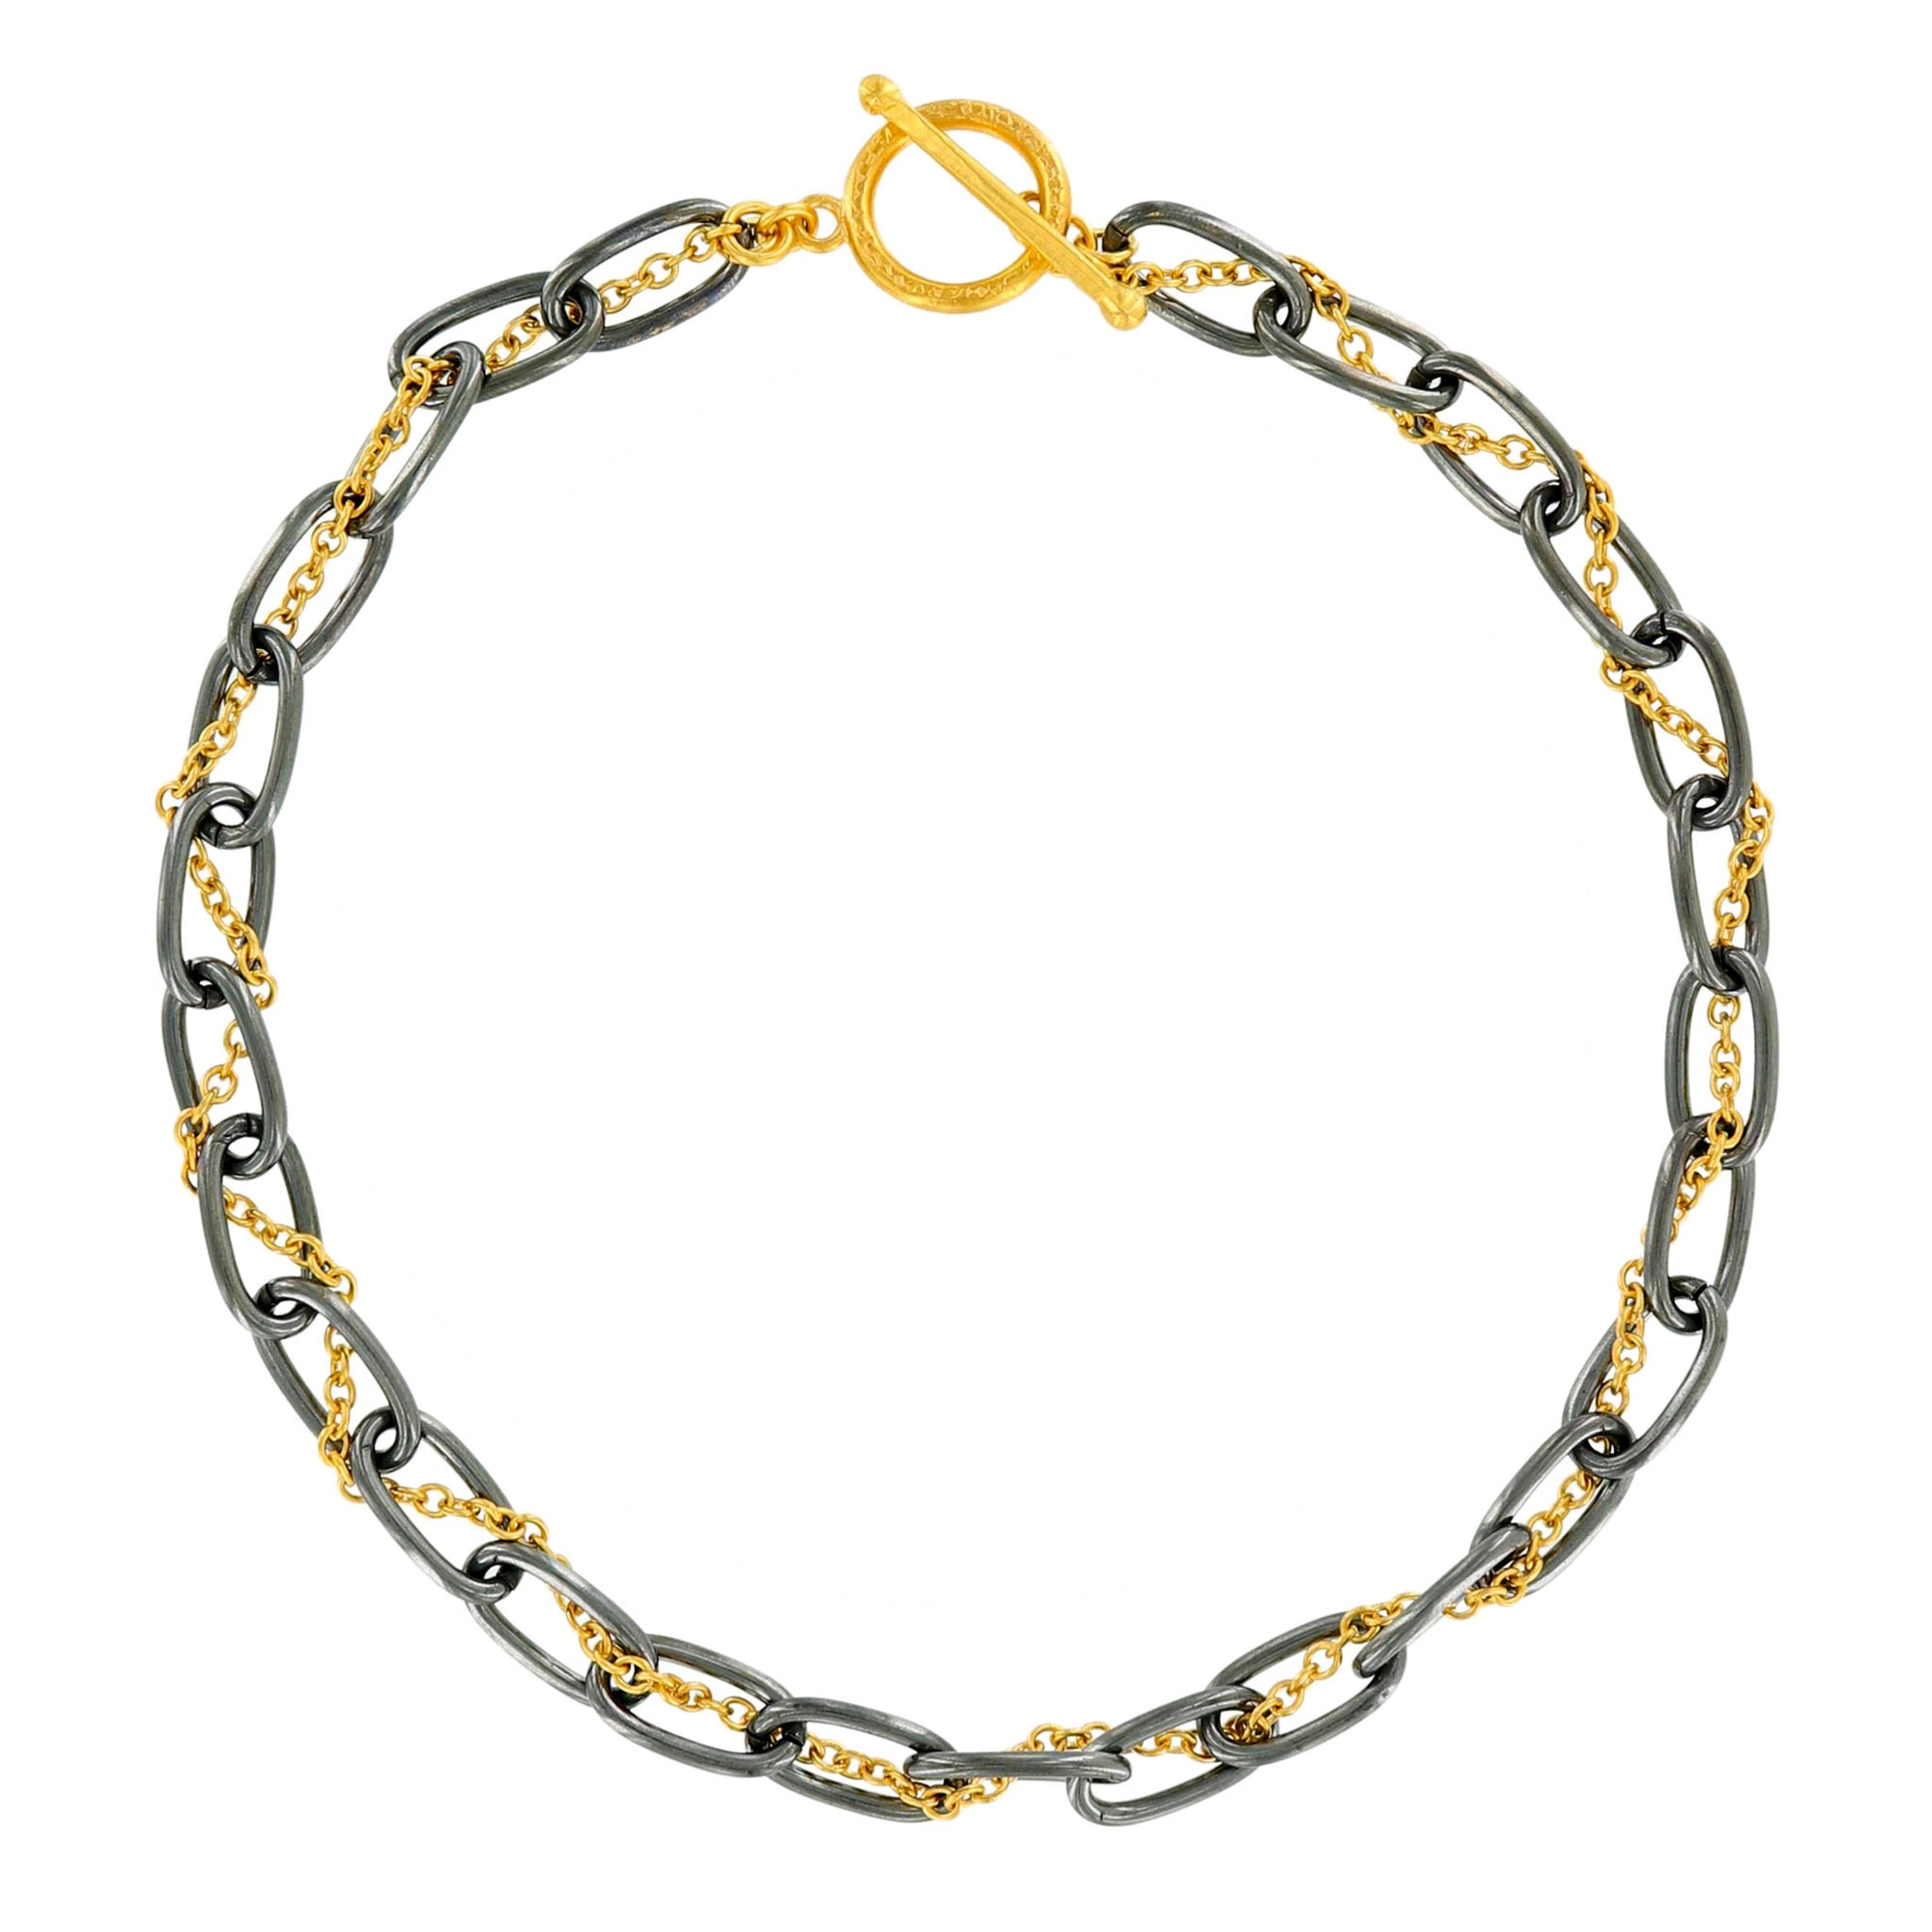 david silver and chains medium oval yurman necklace sterling gold link product yellow